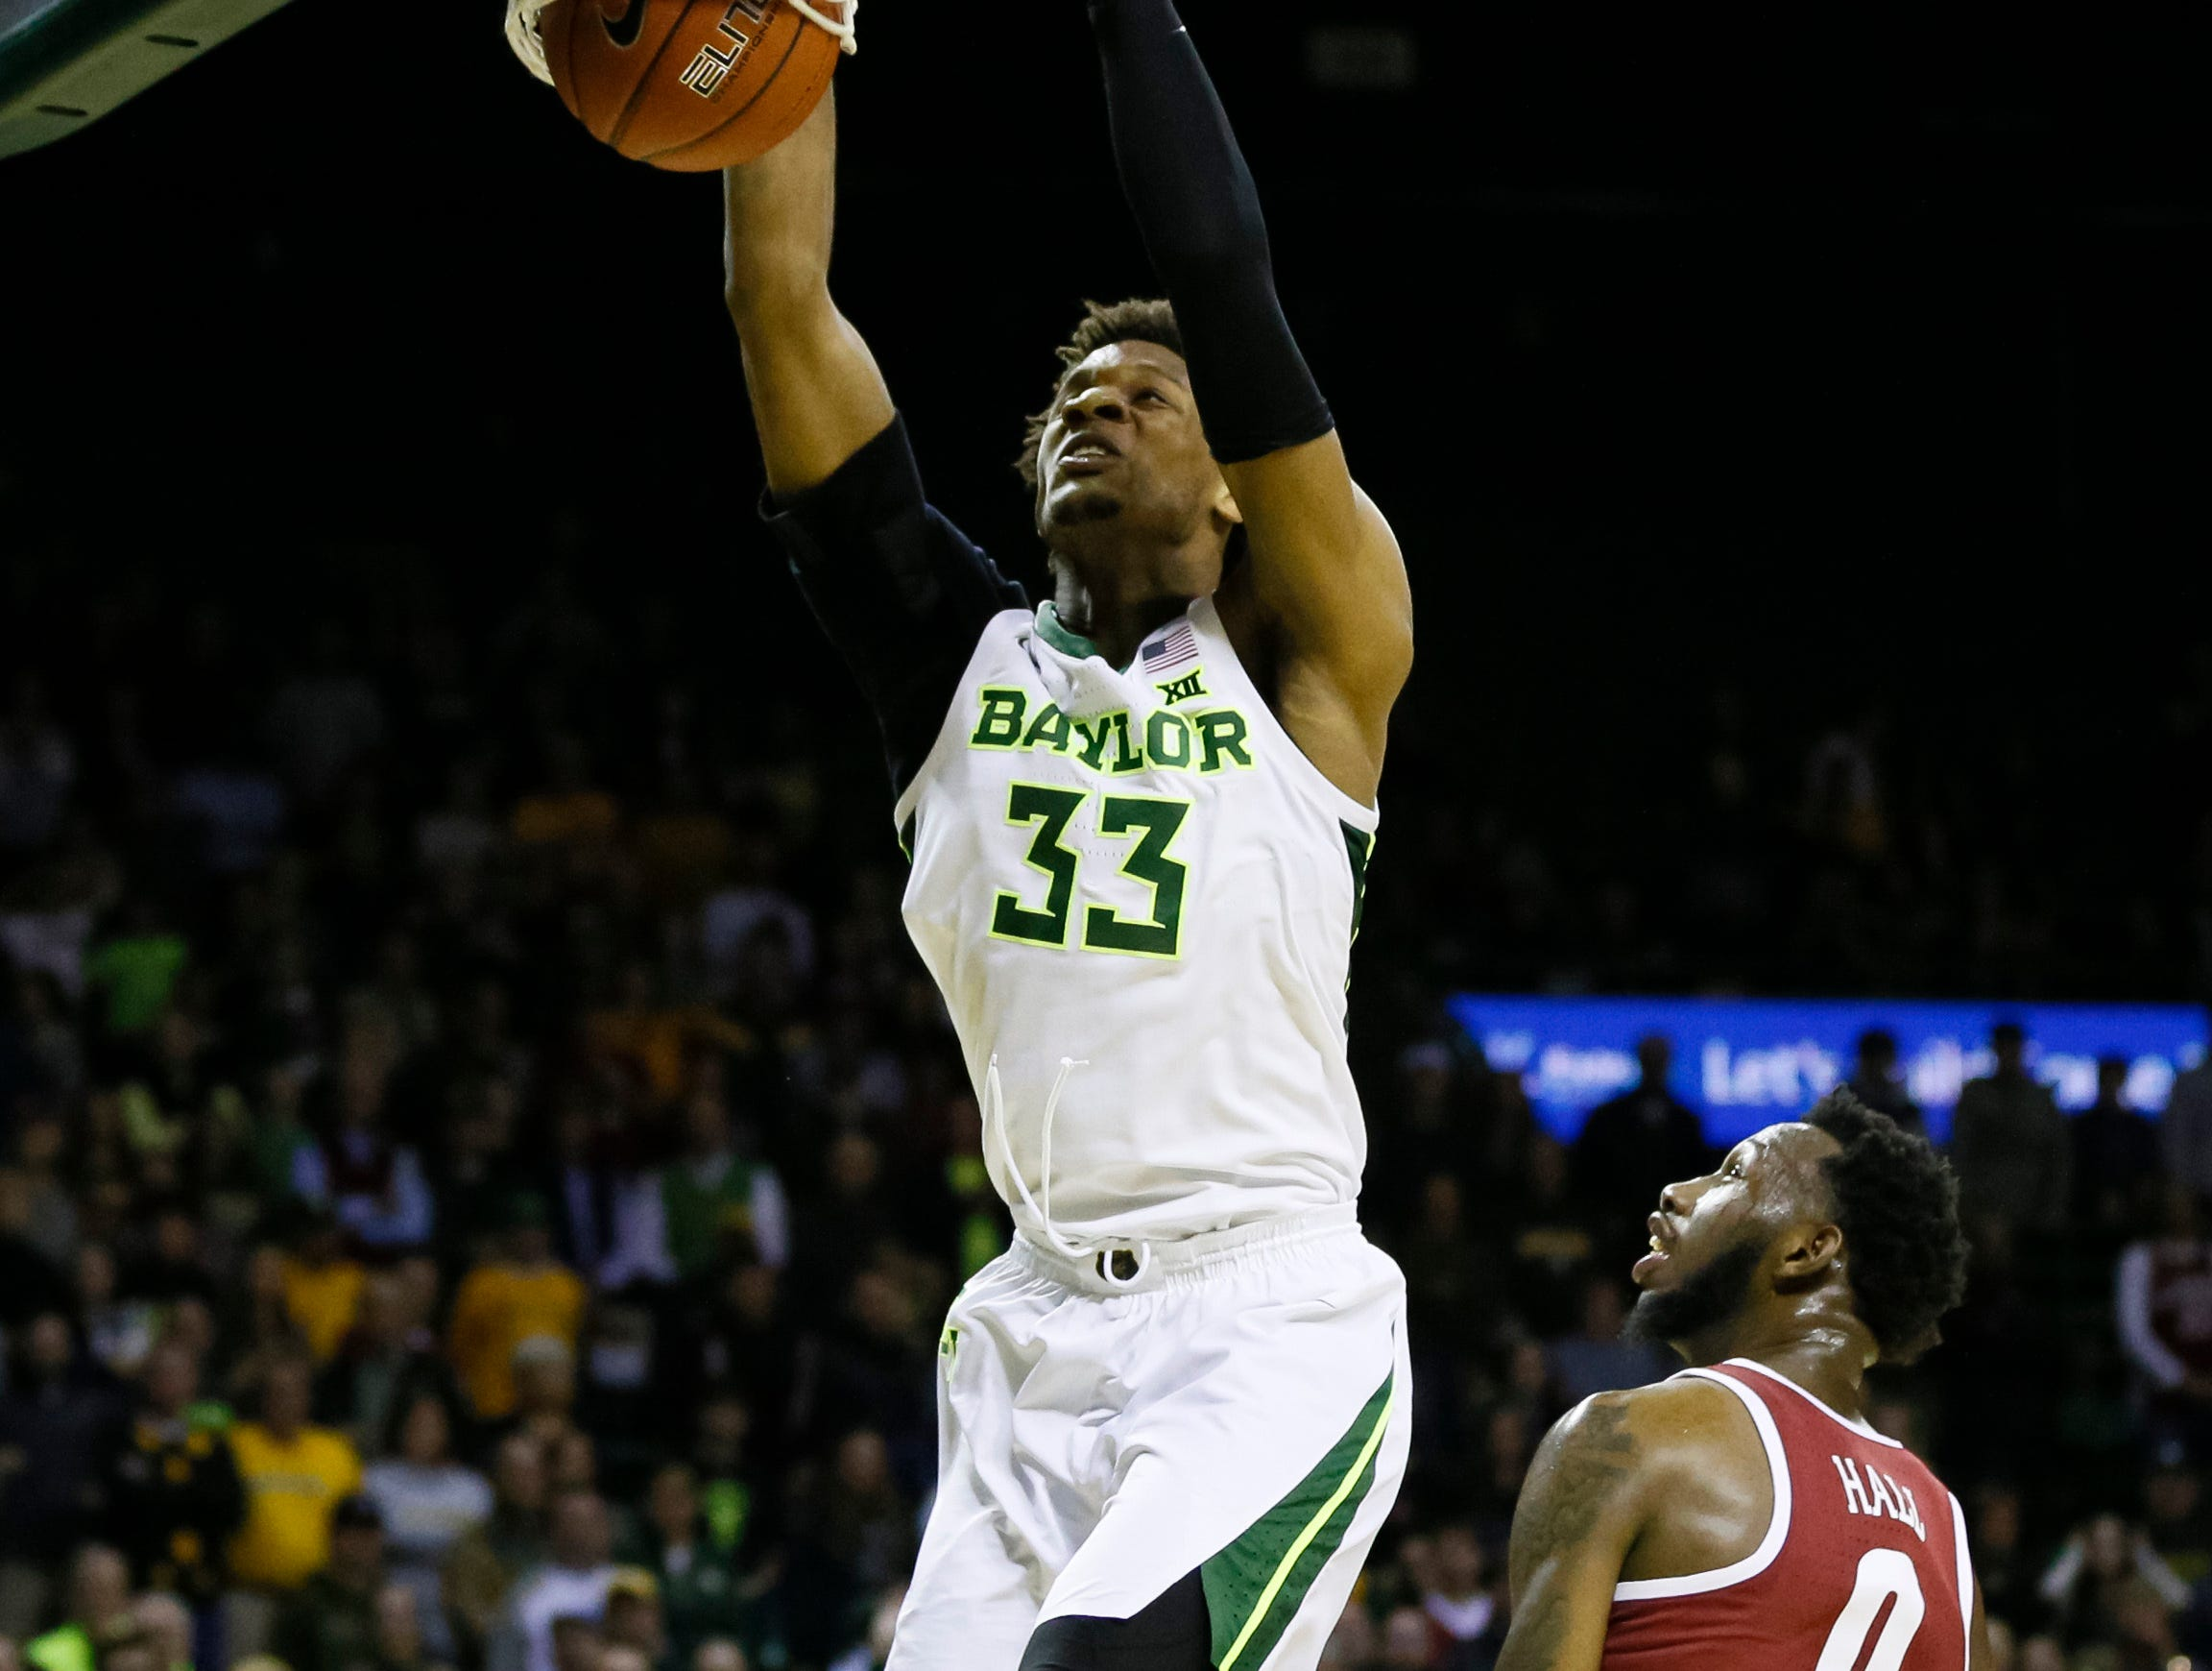 Jan 26, 2019; Waco, TX, USA; Baylor Bears forward Freddie Gillespie (33) follows thru on a dunk over Alabama Crimson Tide forward Donta Hall (0) during the second half at Ferrell Center. Mandatory Credit: Ray Carlin-USA TODAY Sports